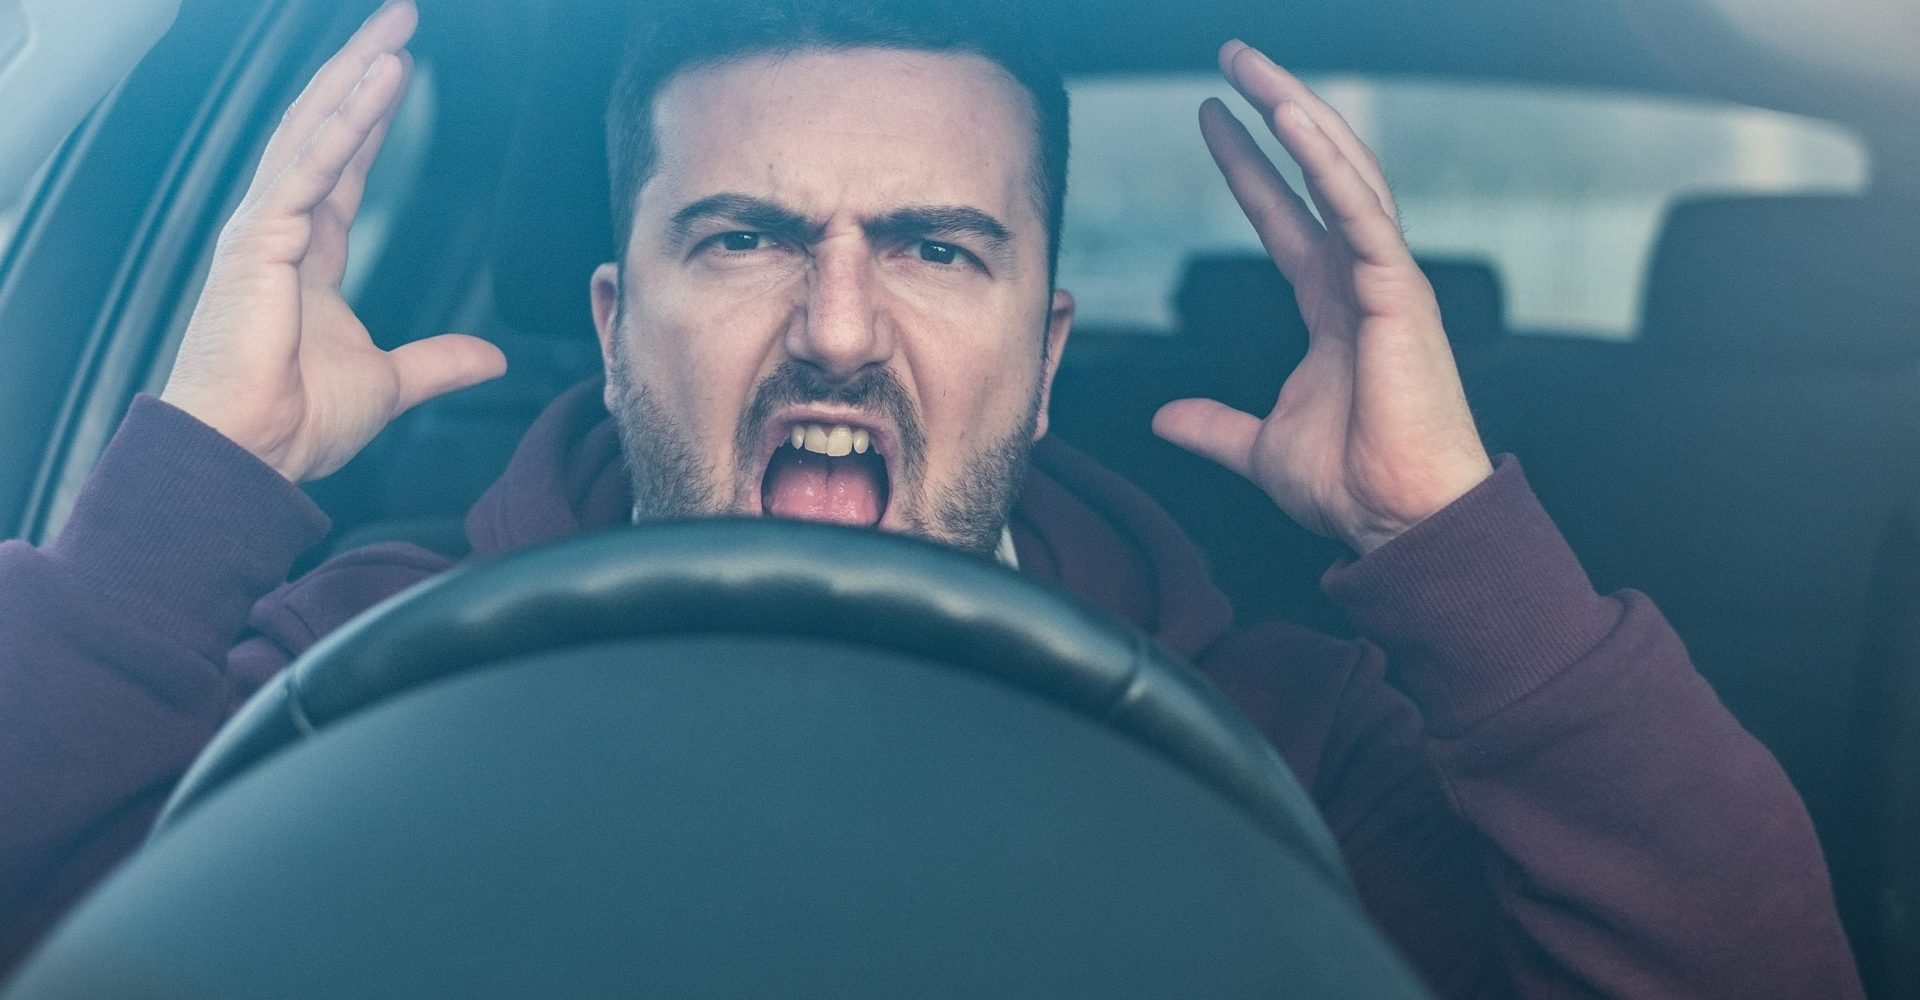 One-in-five motorists feel more anxious about driving since lockdown